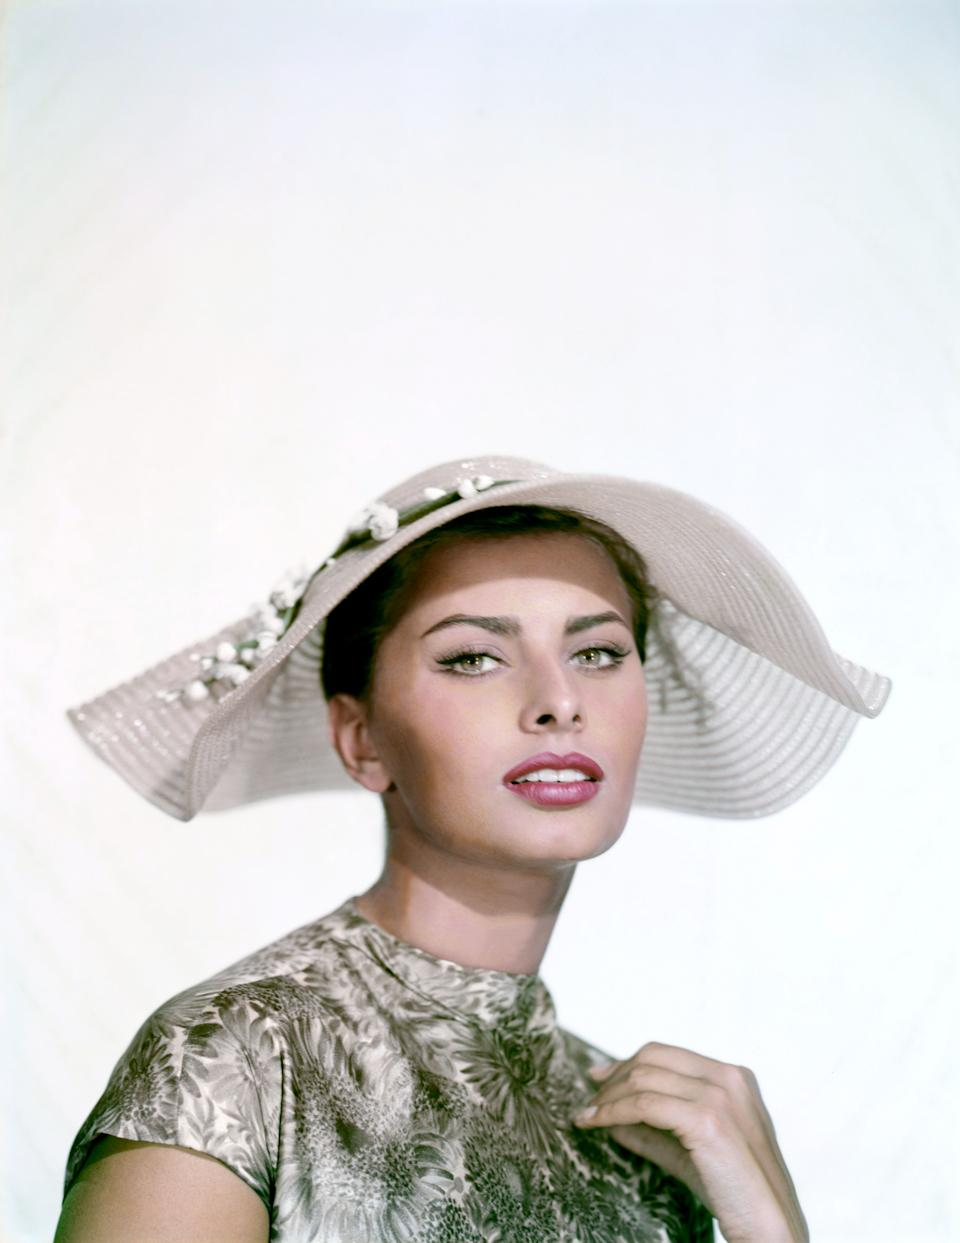 The actress wears flower-trimmed hat in this undated photo.